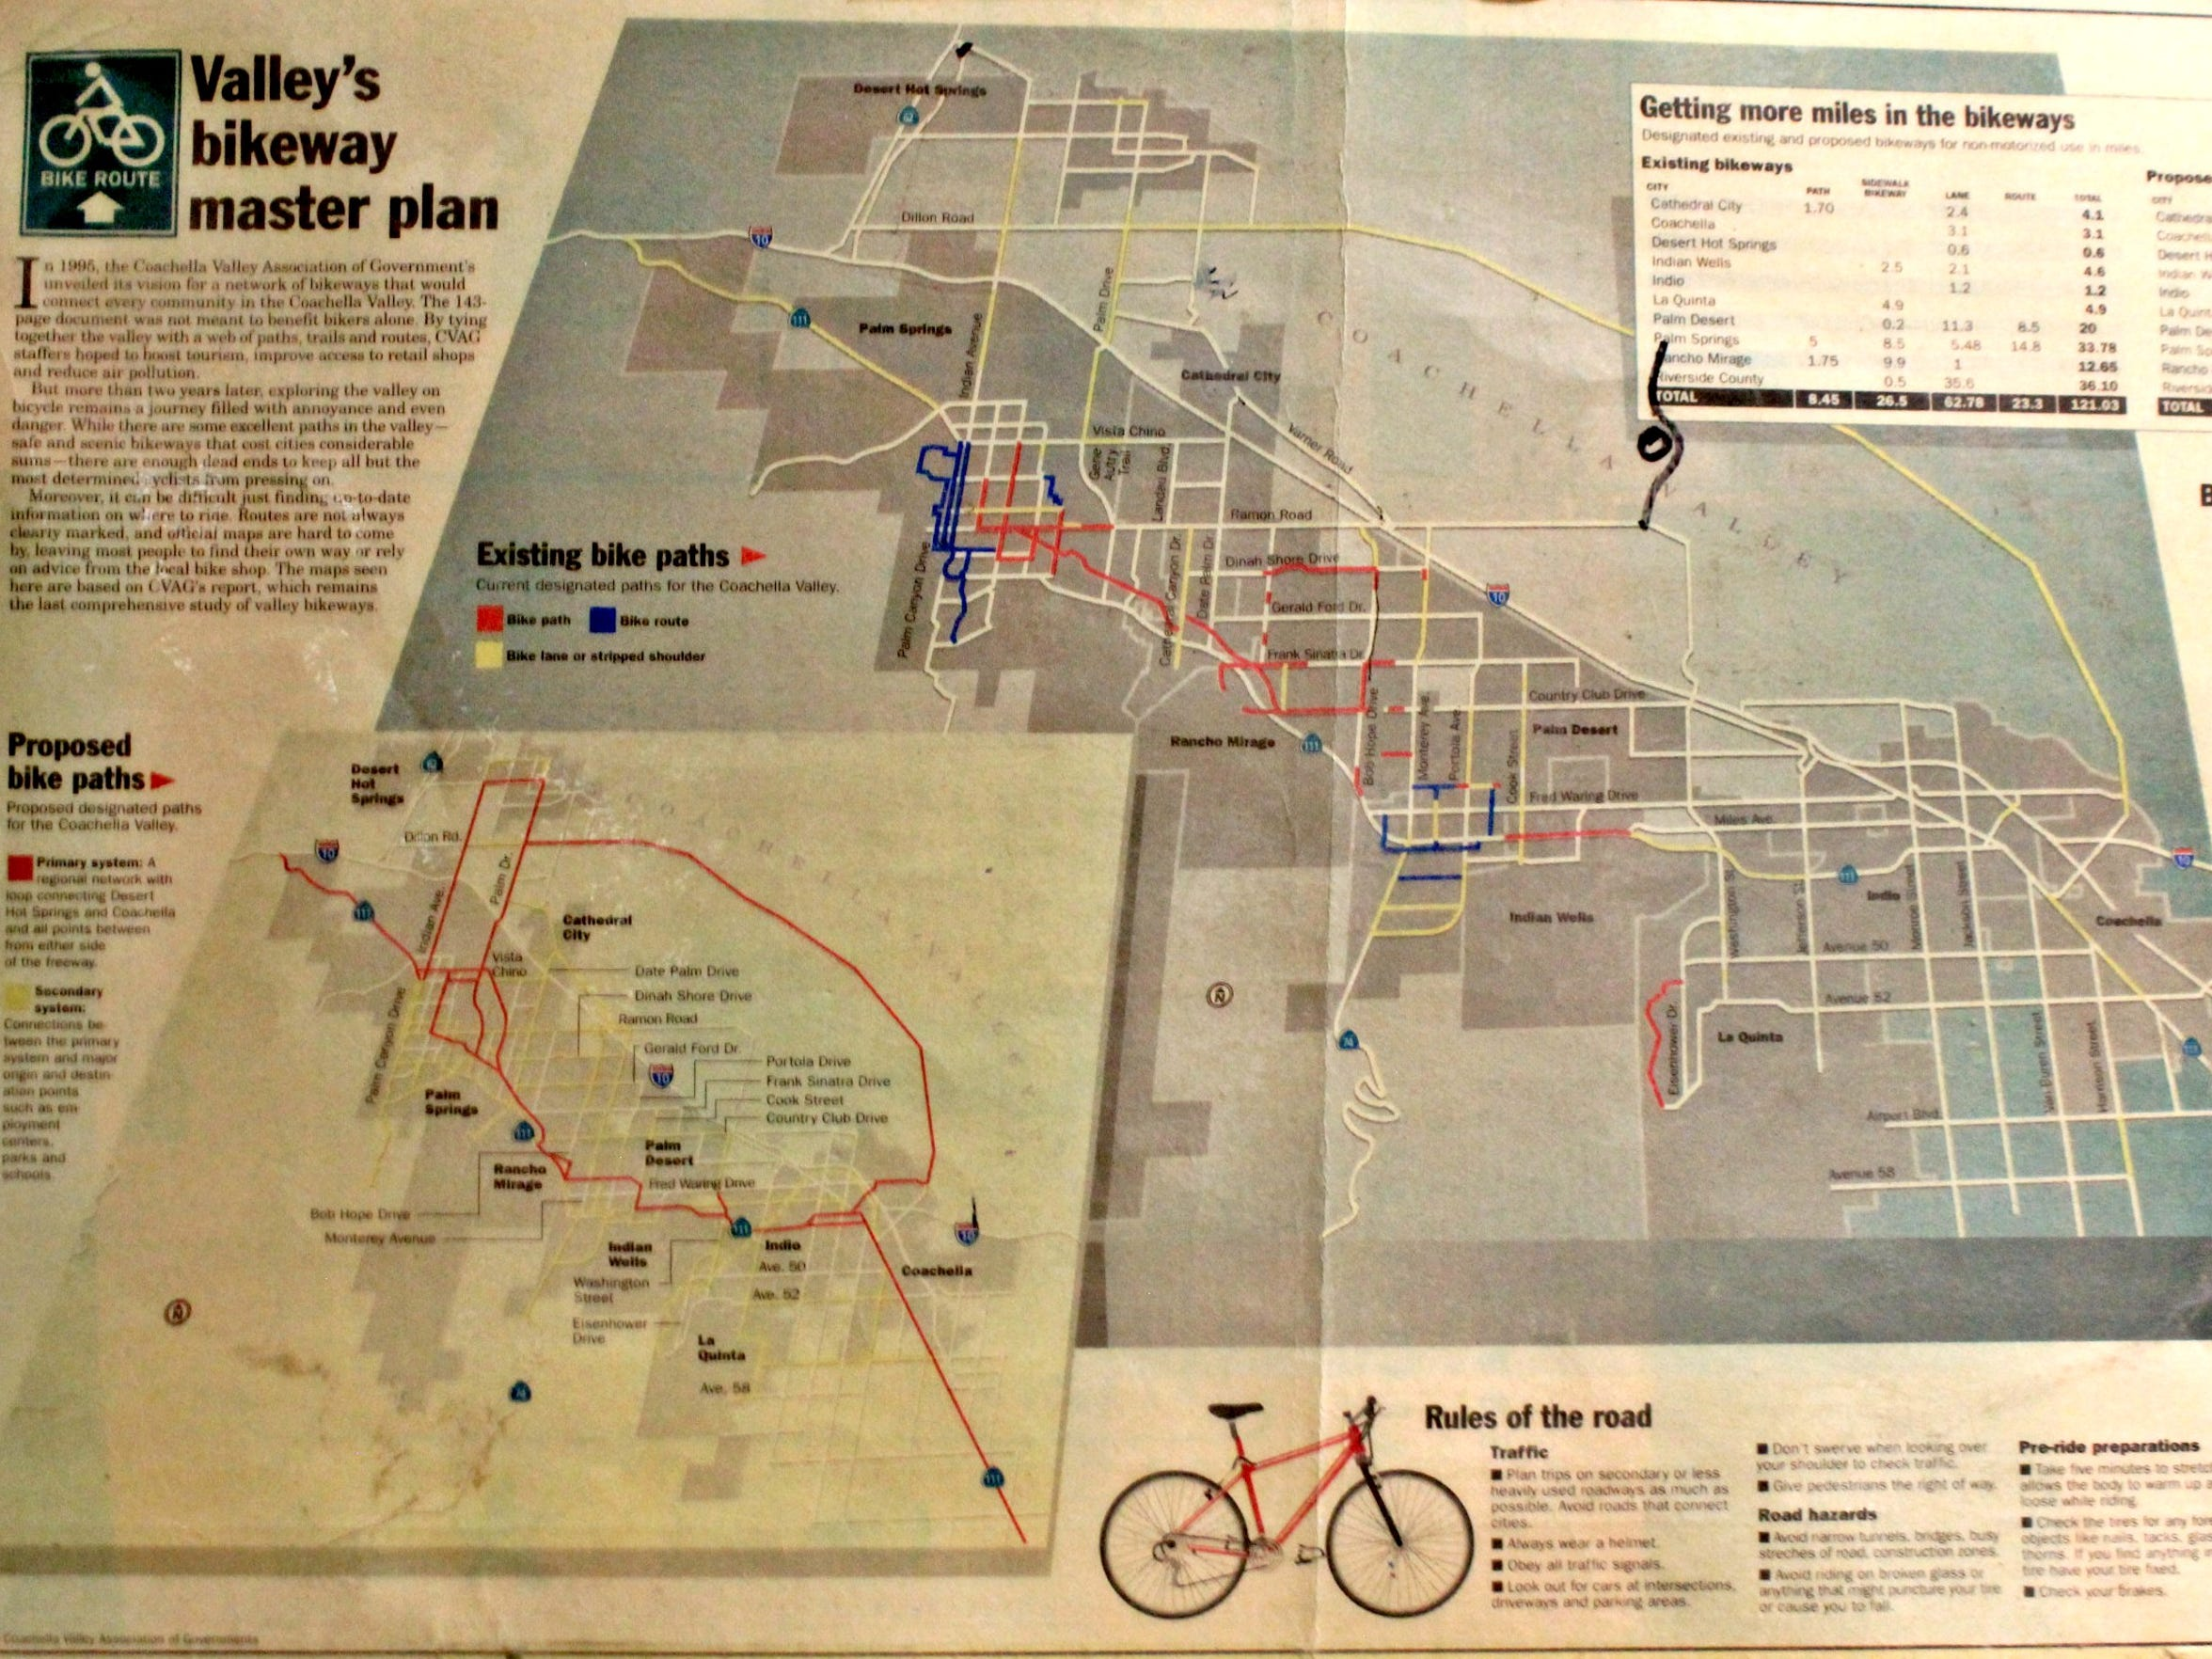 How We Got Here The Ironic History Behind Attempts To Derail Cv Diagrams Of Engineering Design Loop A Map Valley Wide Bicycle That Was Proposed